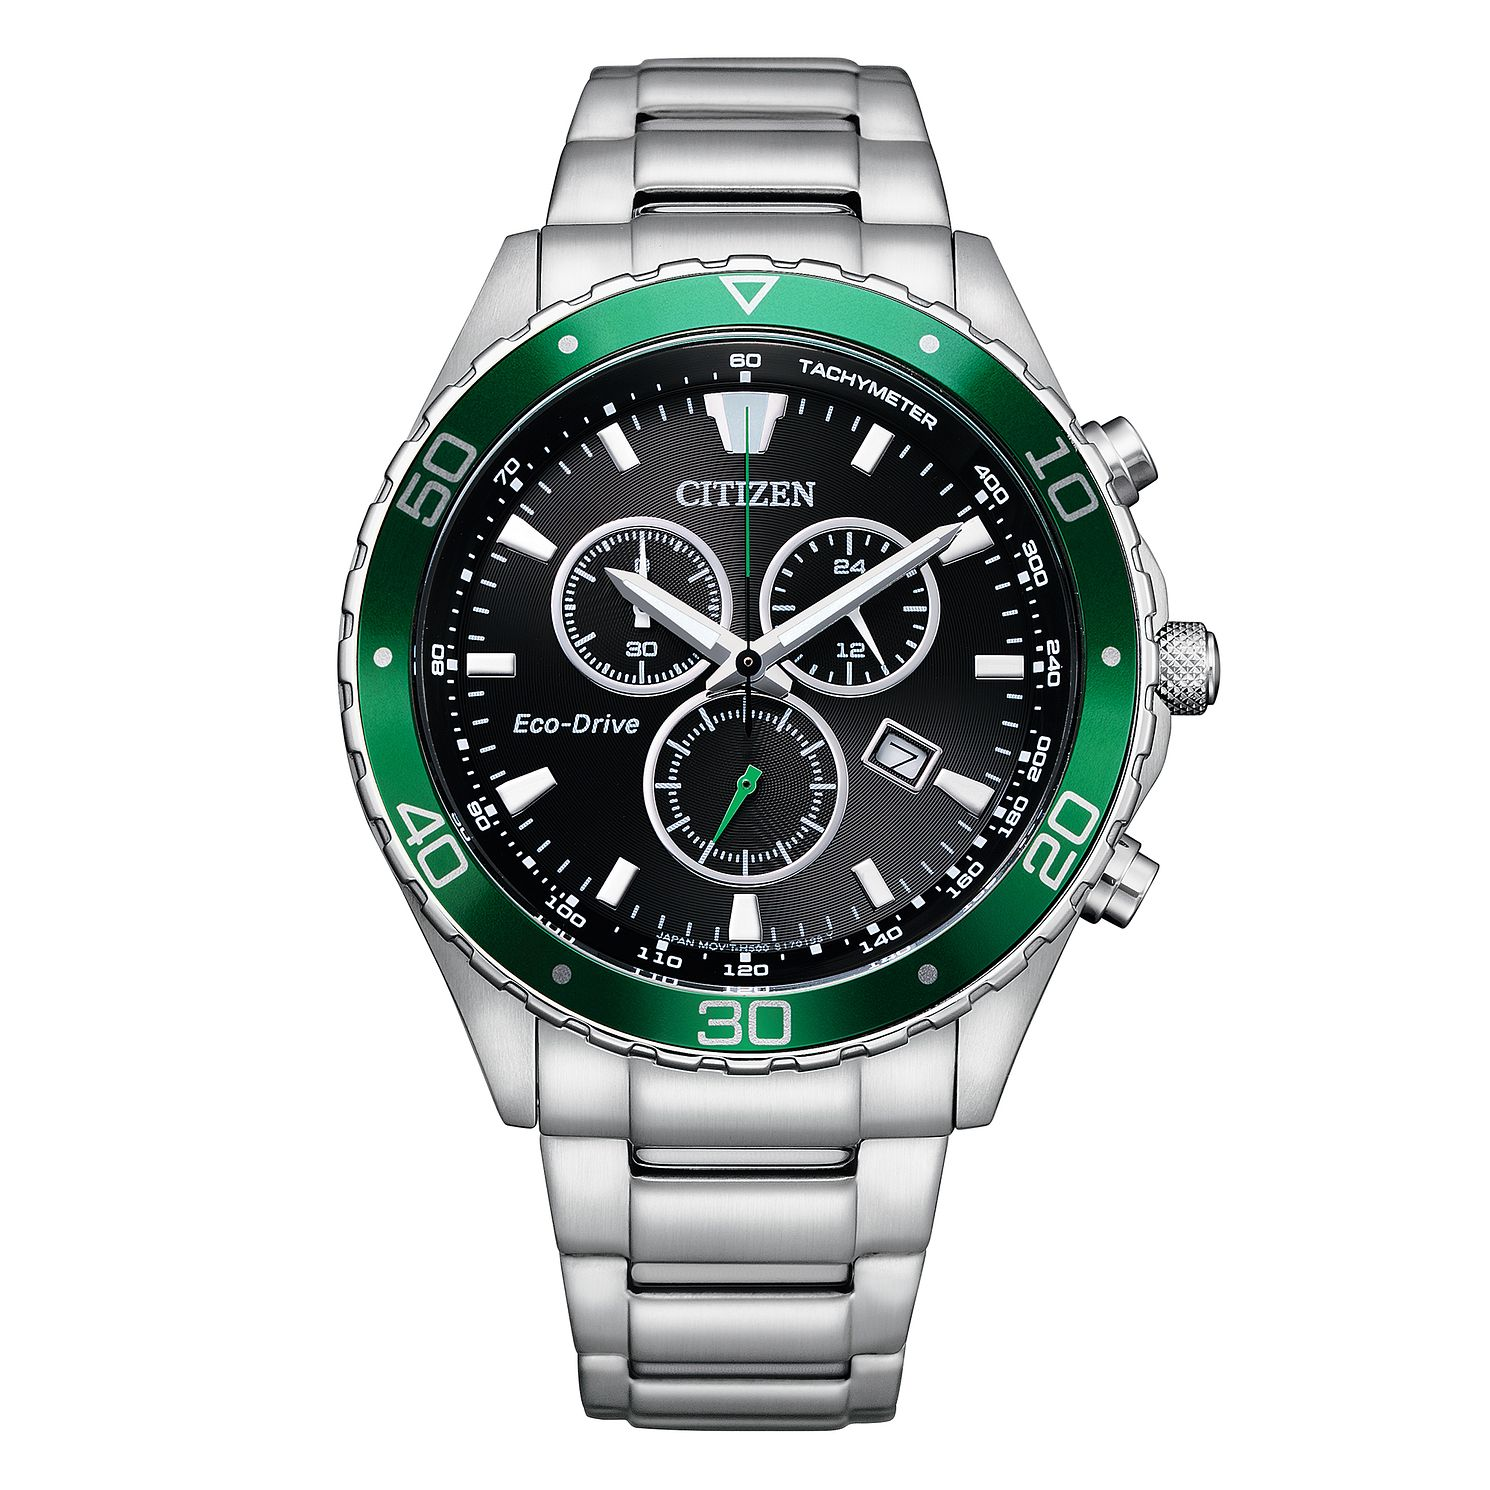 Citizen Eco-Drive Chronograph Stainless Steel Bracelet Watch - Product number 1016857